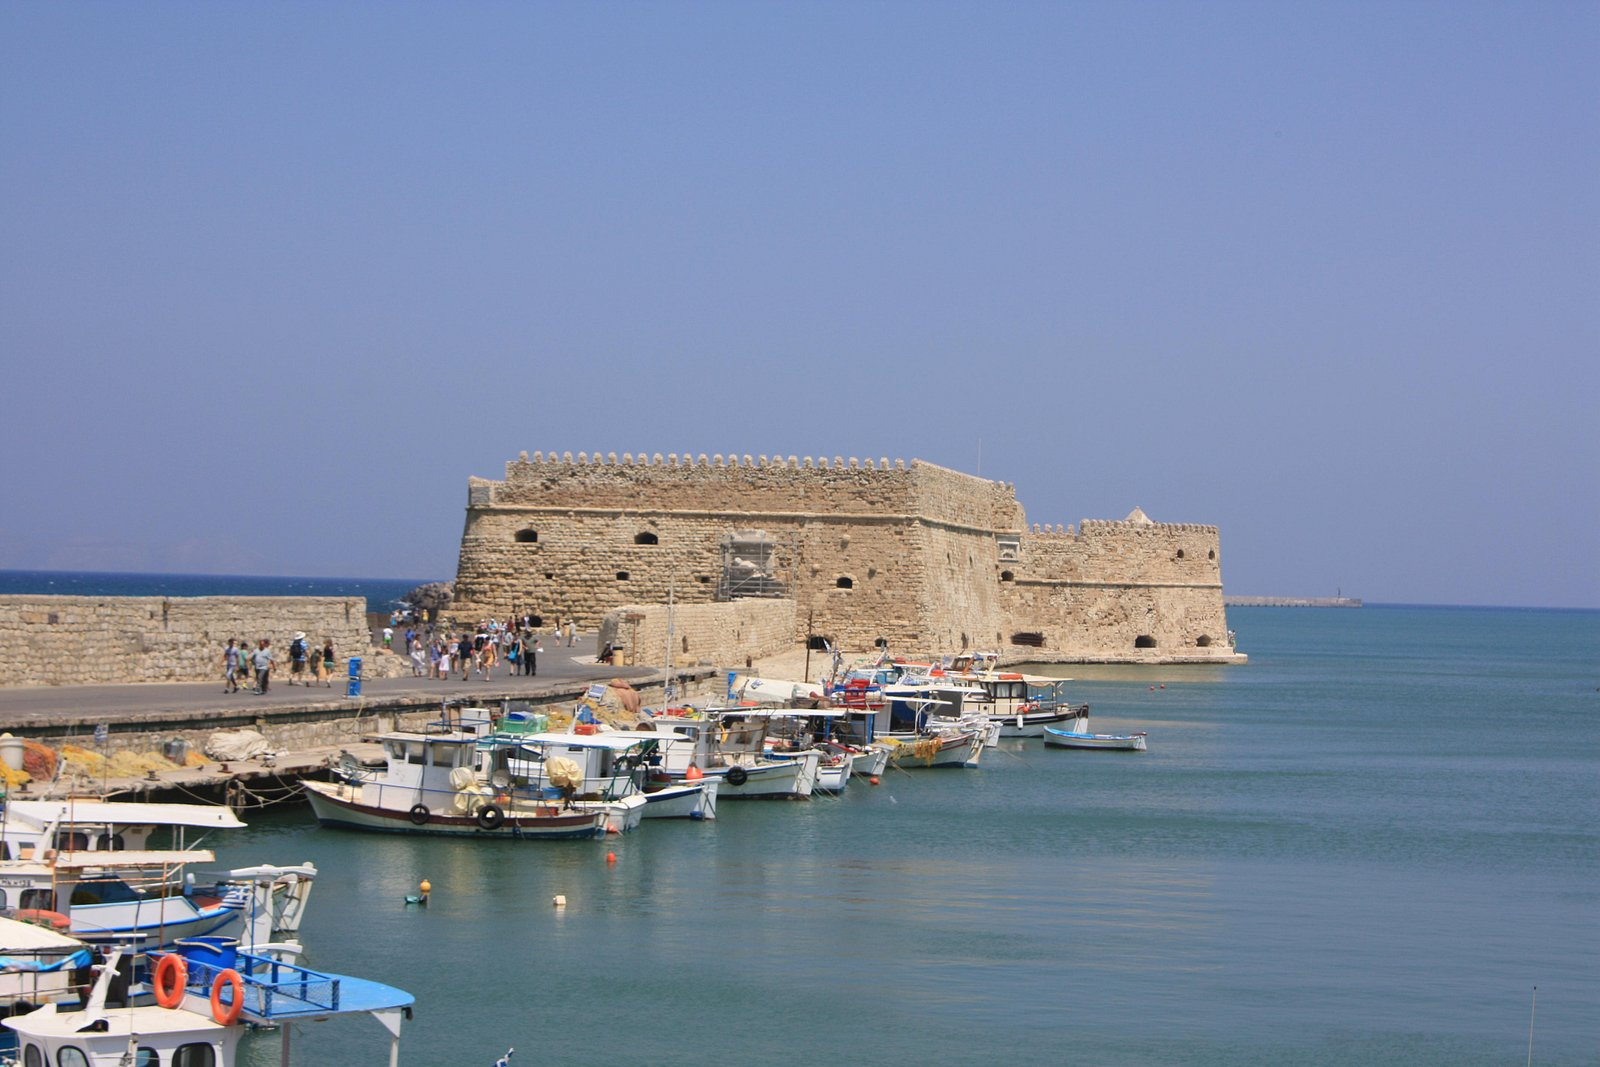 Heraklion, son port et son fort